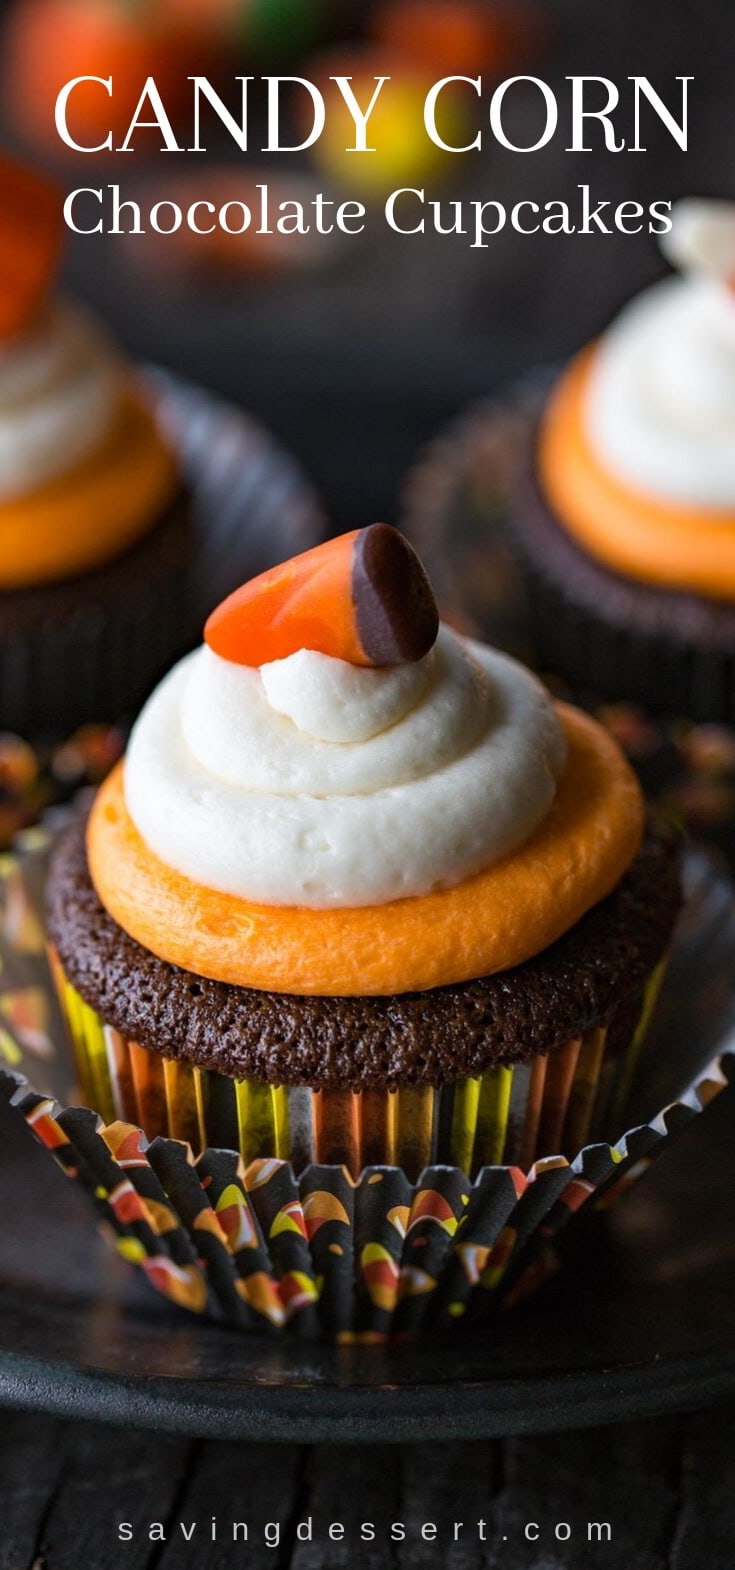 A chocolate cupcake topped with buttercream icing and a candy corn on top